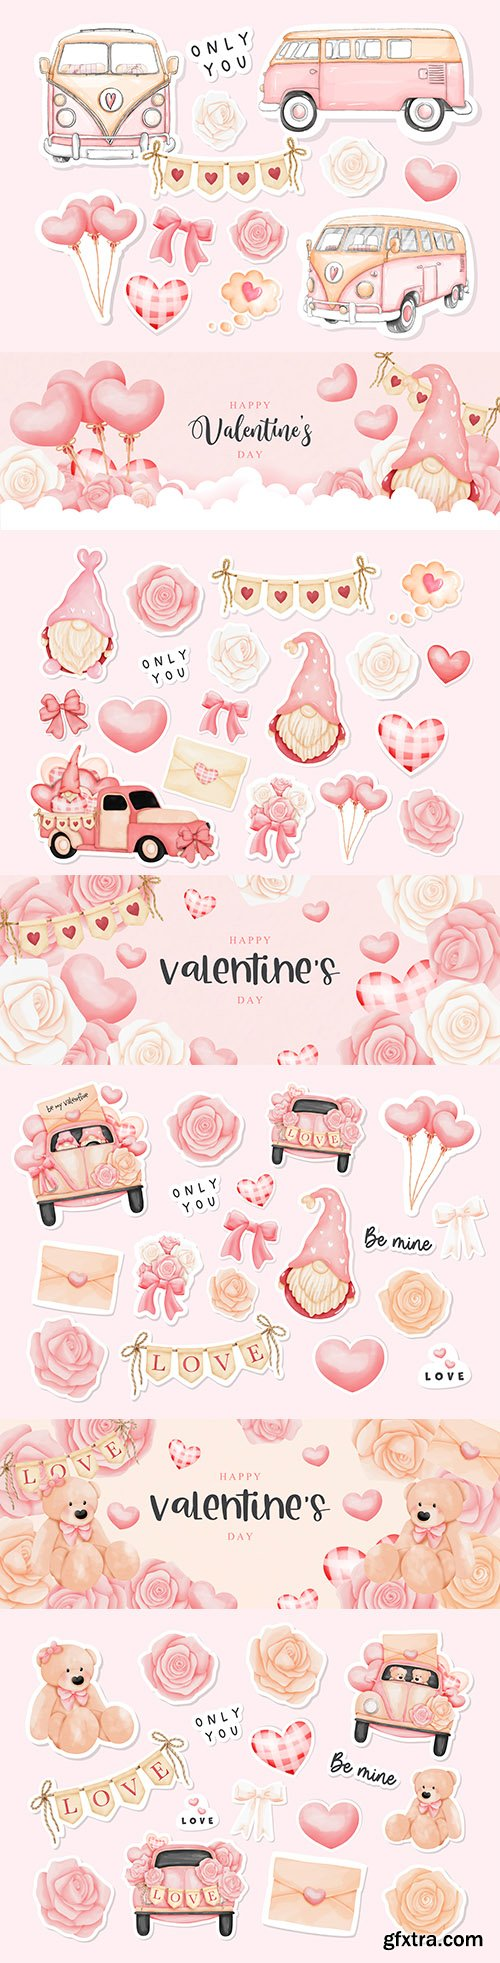 Happy Valentine's Day with elements and gnome watercolor stickers